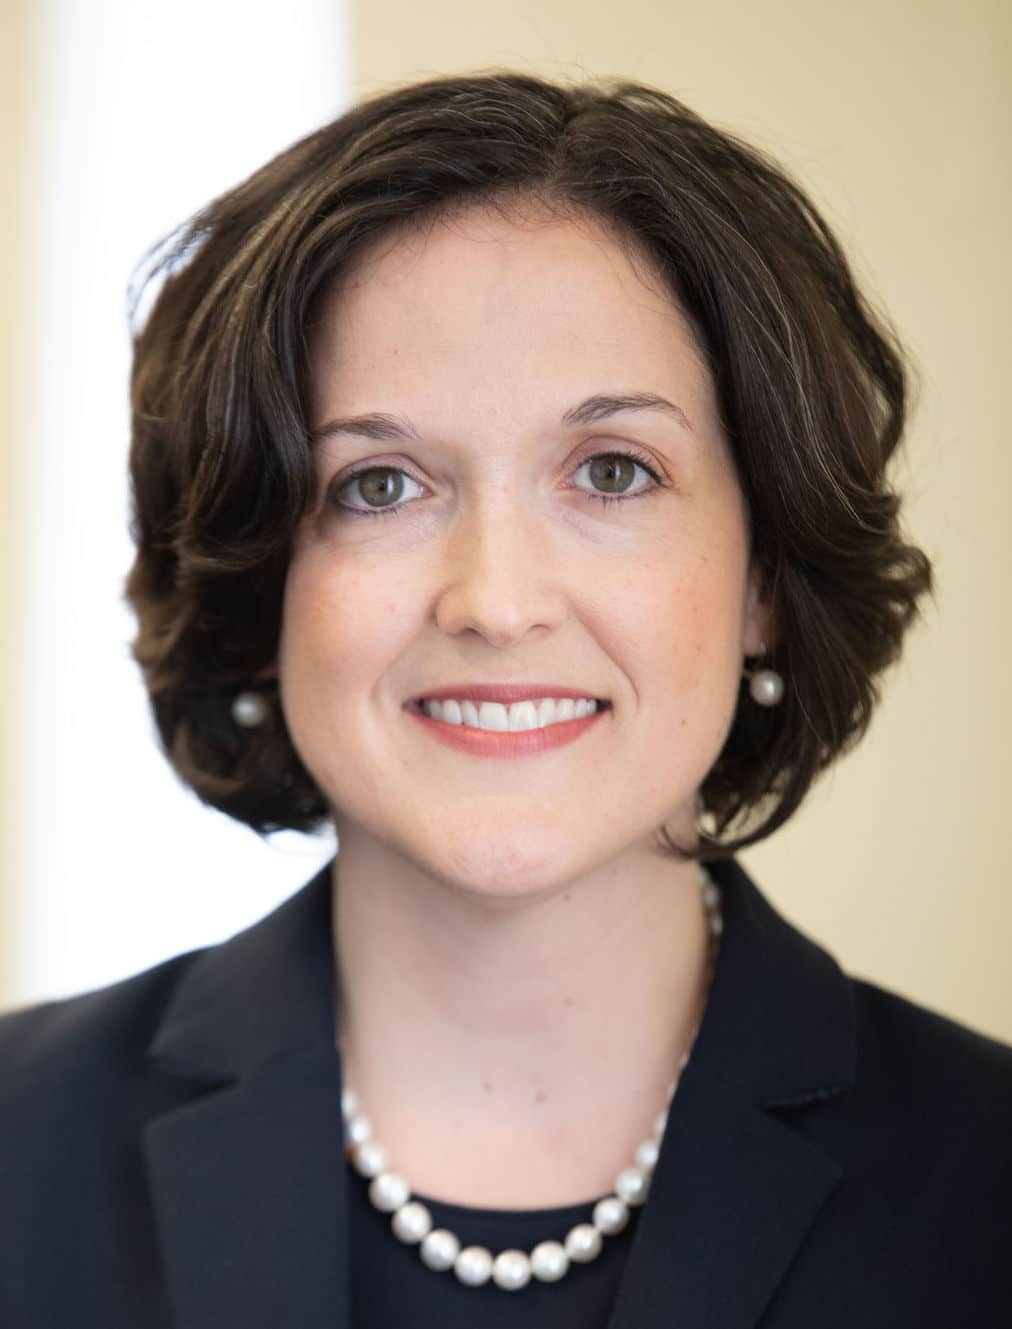 Westlake Legal Group Sarah-Pitlyk-image James Gottry: Trump judicial nominee faces serious opposition and meritless criticism from the ABA James Gottry fox-news/politics/judiciary/federal-courts fox-news/politics/judiciary fox-news/person/donald-trump fox-news/opinion fox news fnc/opinion fnc ddc24ce0-cbe8-59d6-94f1-acc90de02176 article